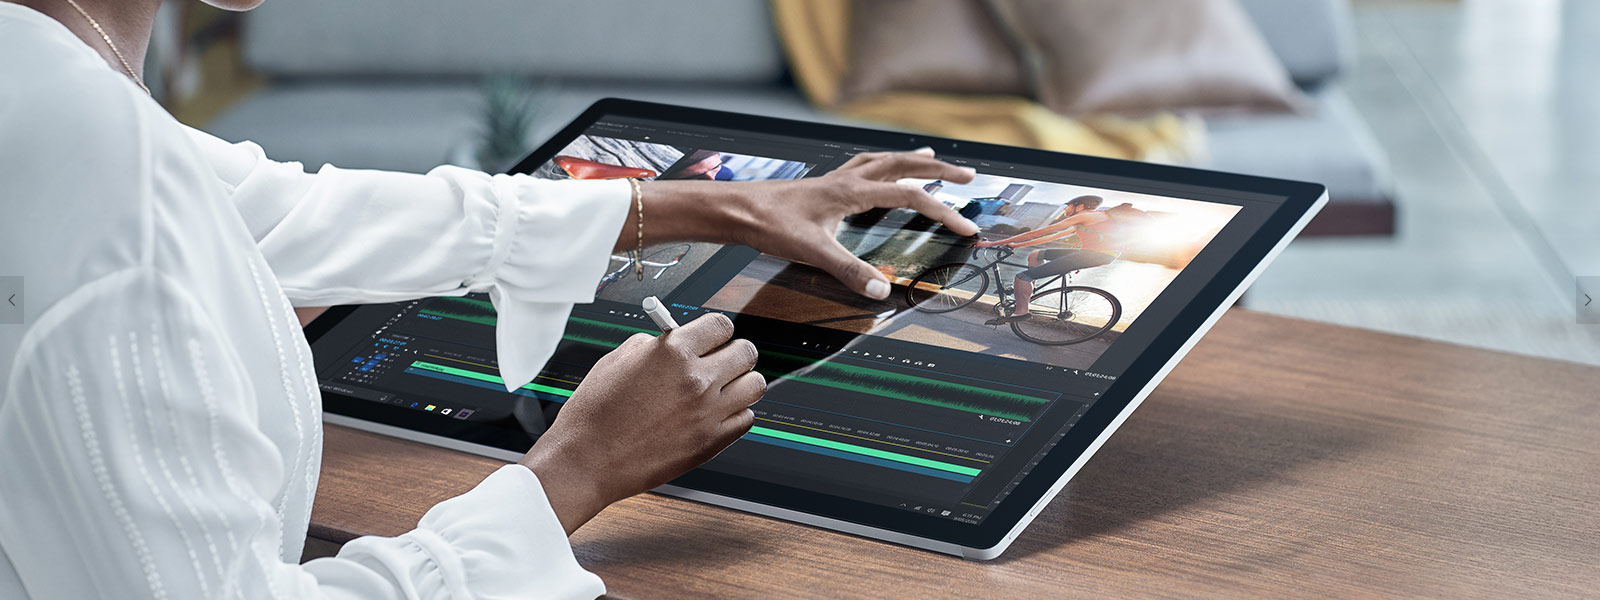 Woman using Surface Studio pinch zooming with Pen and touch.